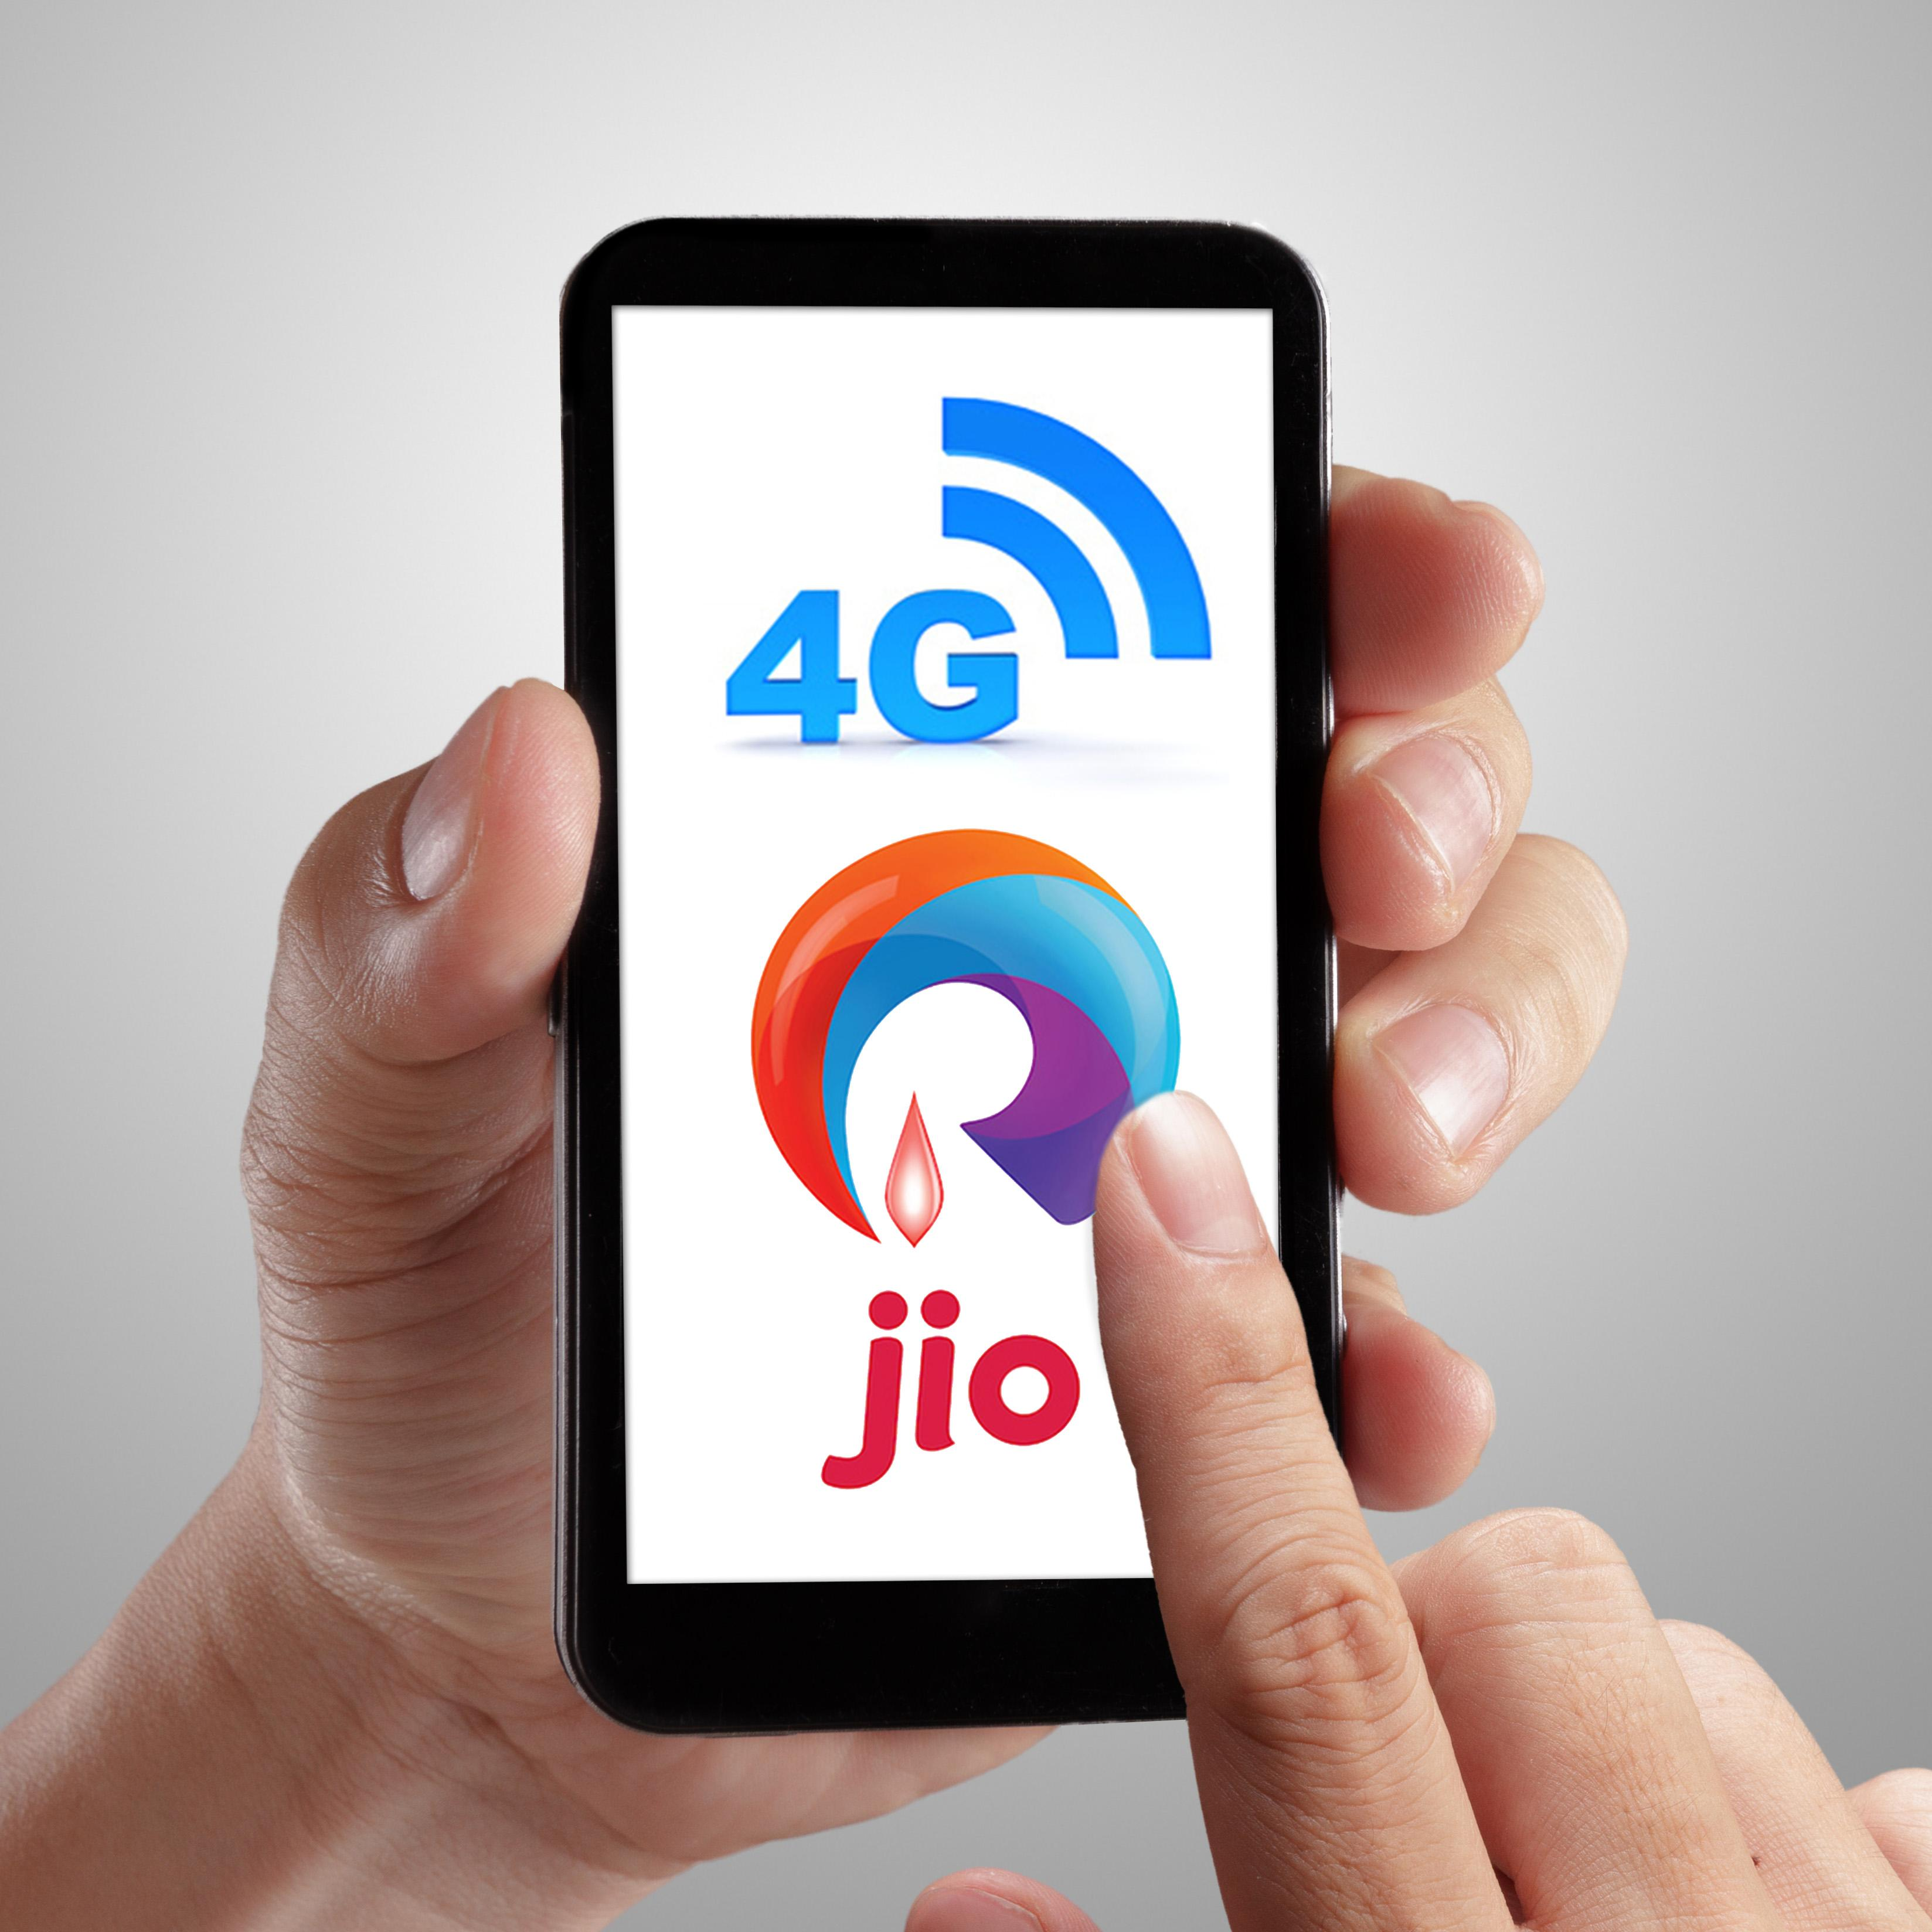 http://www.indiantelevision.com/sites/default/files/styles/smartcrop_800x800/public/images/tv-images/2016/09/02/Reliance%20Jio%204G.jpg?itok=wHy79wQn